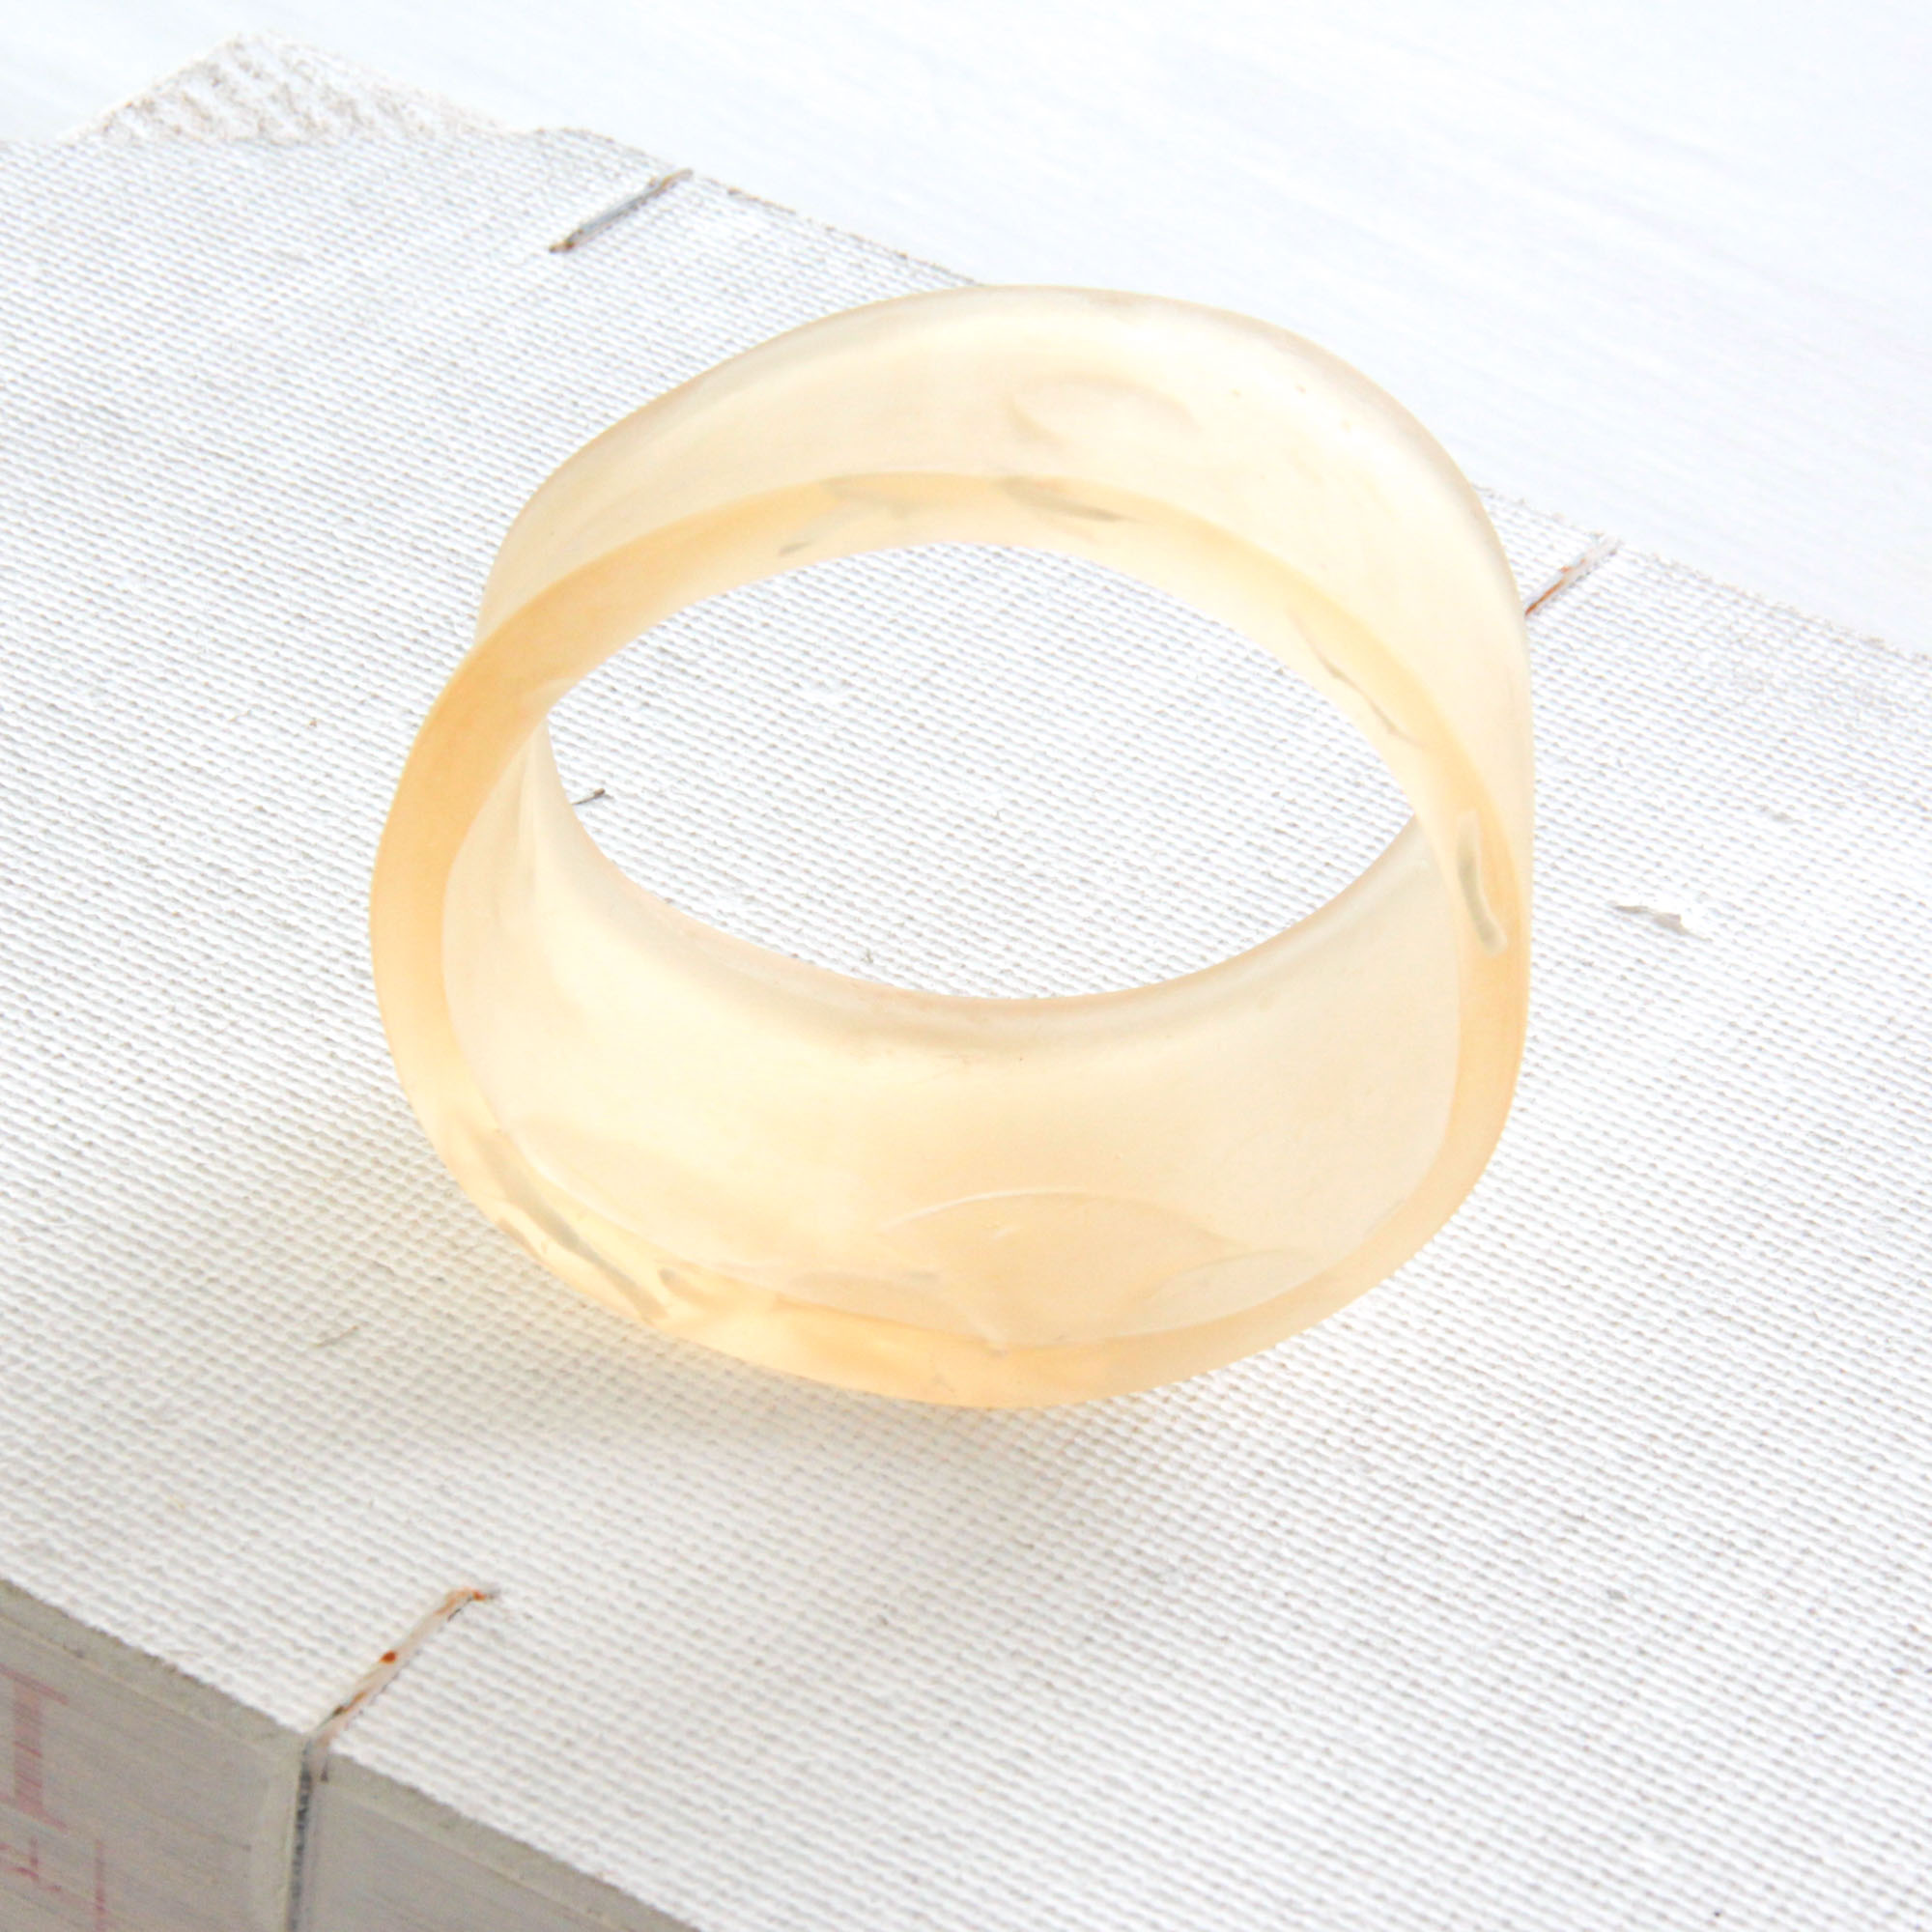 nude resin bangle - • handcasted• transparent nude colour with white inlays• bold, chunky and chic• br445 euro